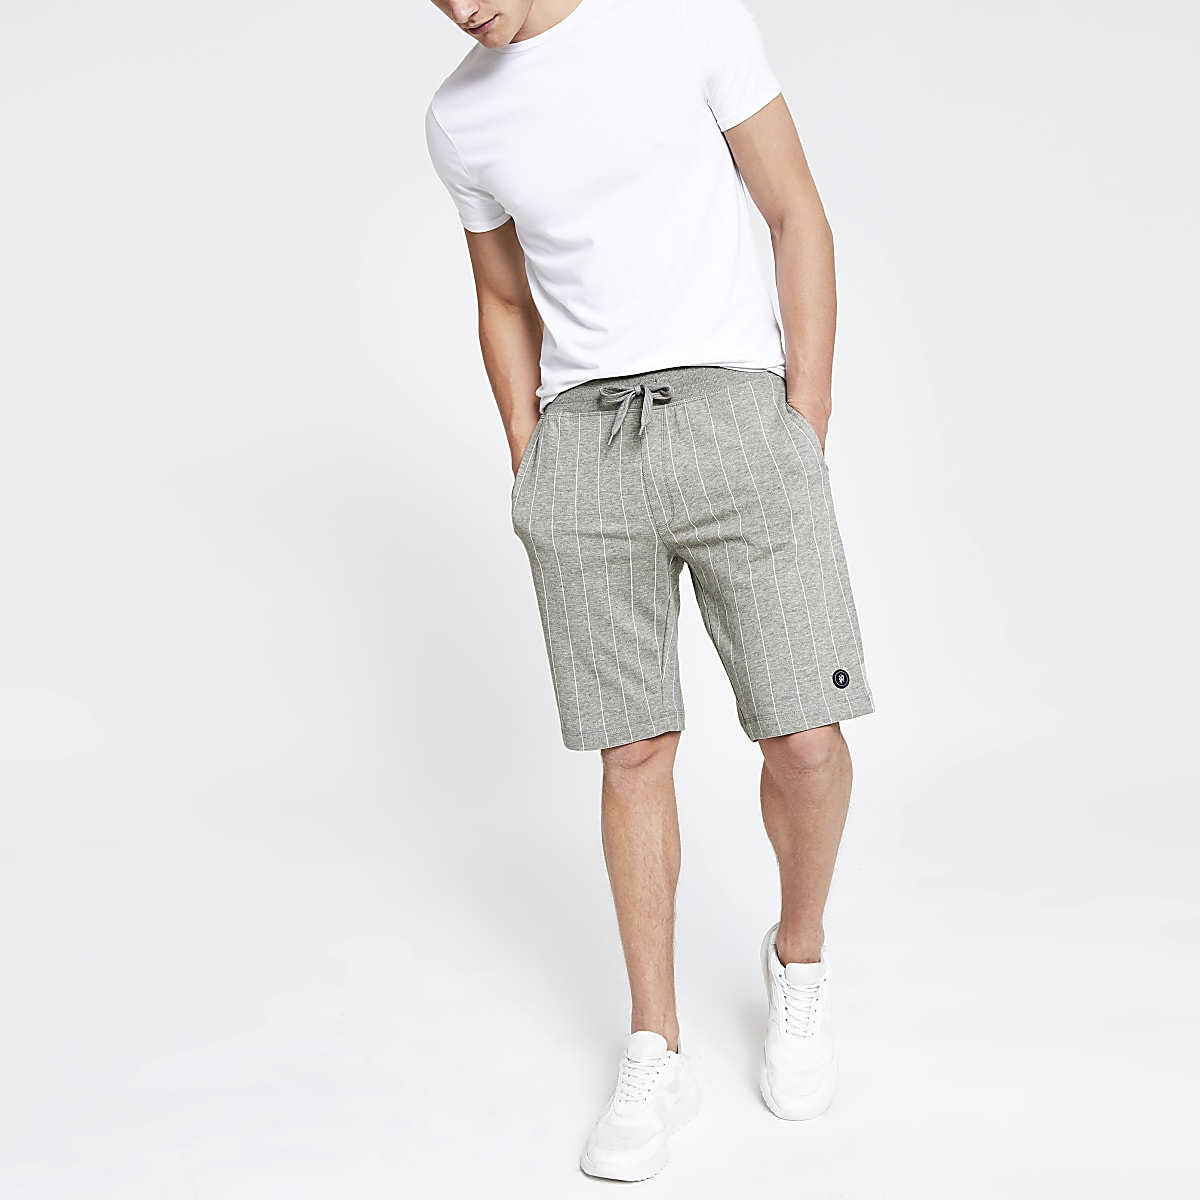 Jack & Jones – Graue Jersey-Shorts mit Nadelstreifen